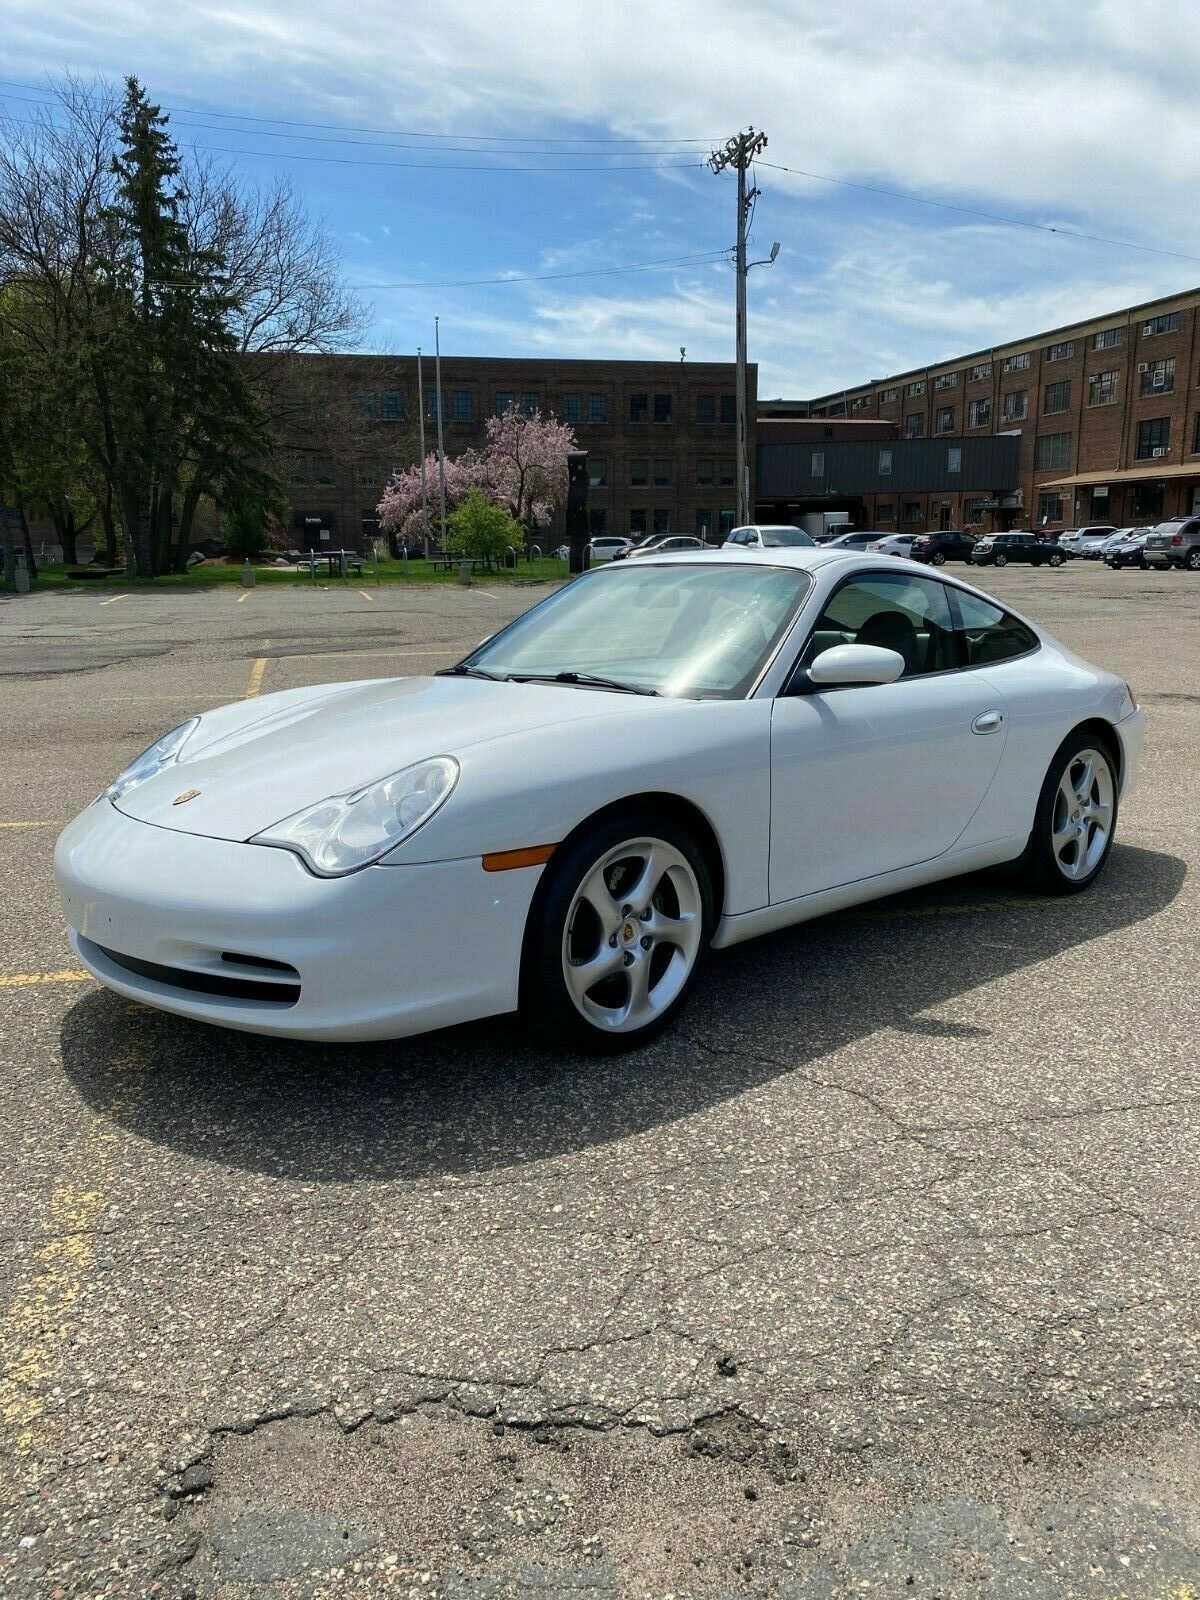 2004 Porsche 911 Carerra Coupe with Six Speed Transmission and service records